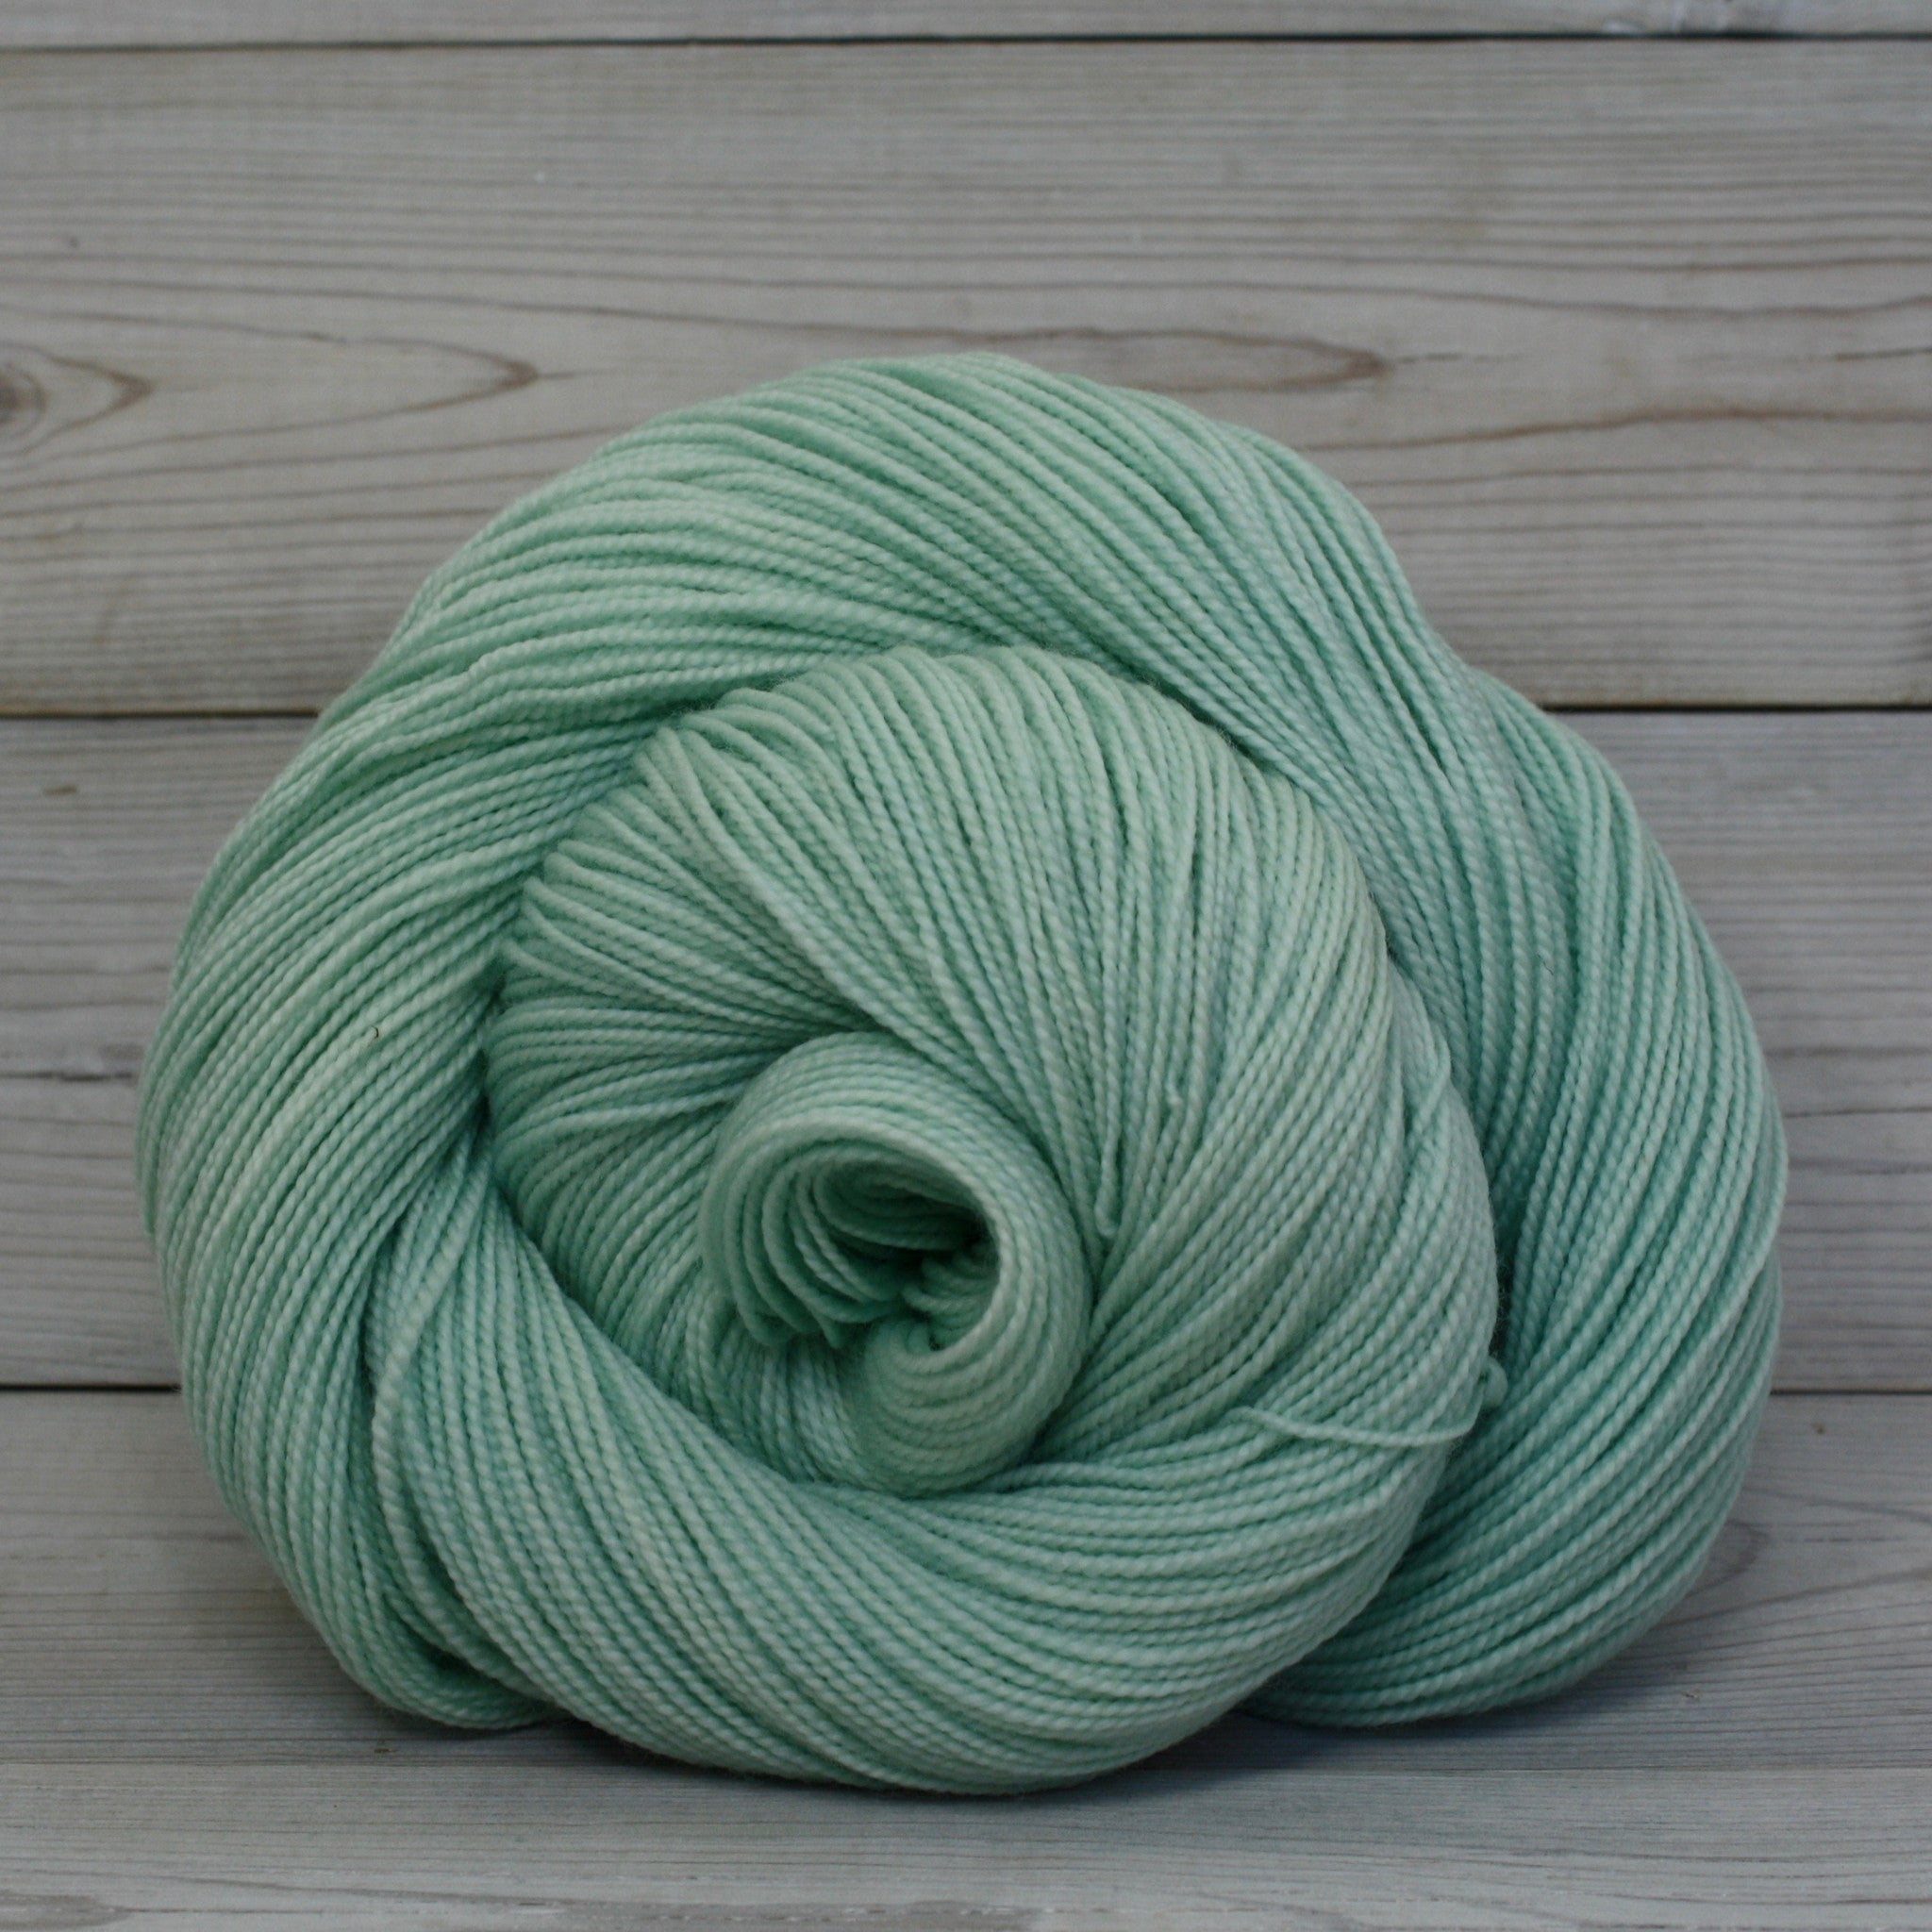 Luna Grey Fiber Arts Celeste Yarn | Colorway: Araucana